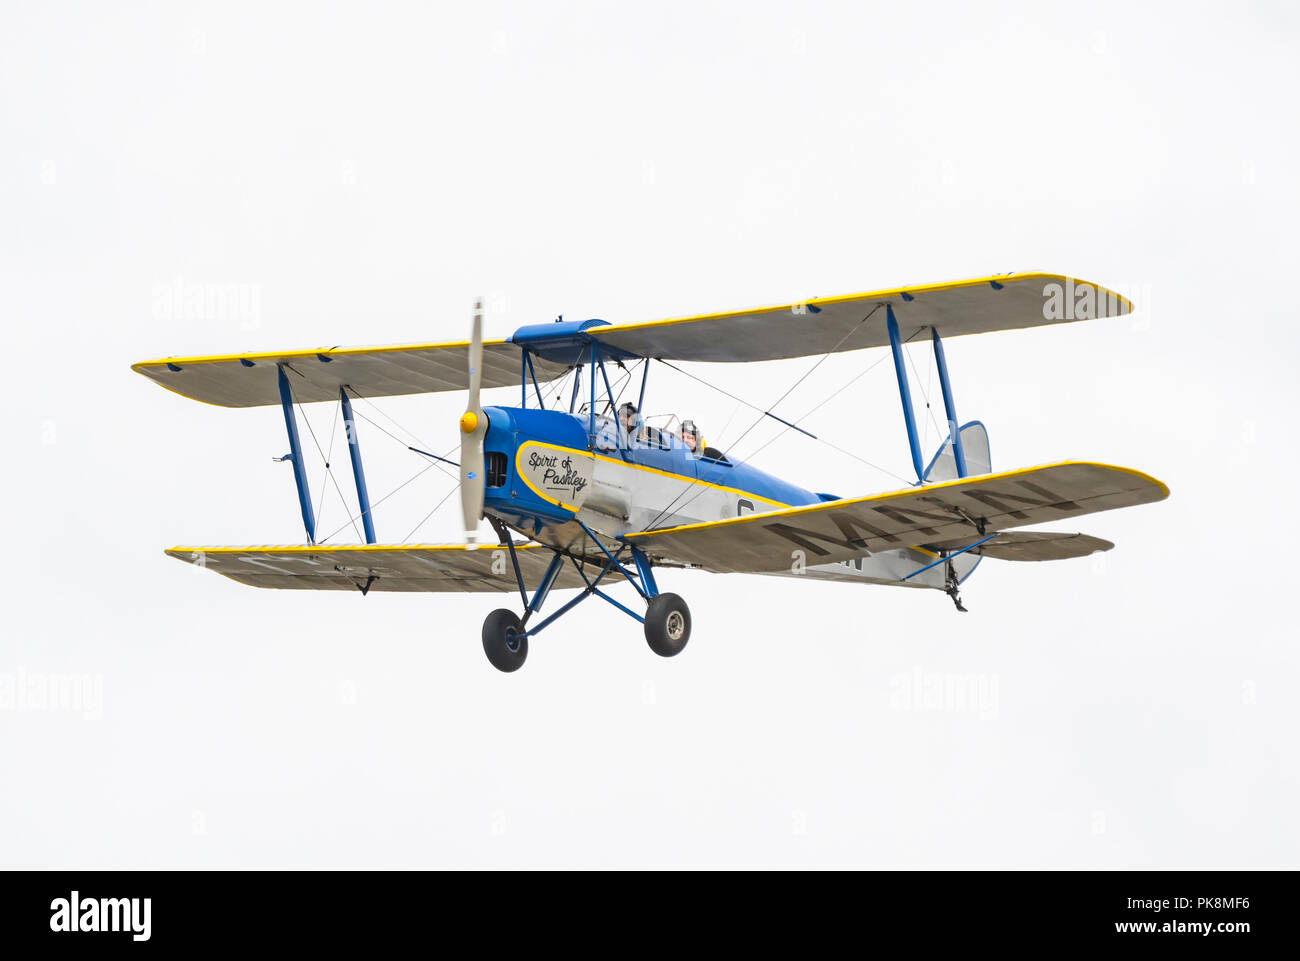 Spirit of Pashley, G-AMNN, a 2 seater single engine Tiger-Moth Bi-plane flying on a dull day in Southern UK. - Stock Image